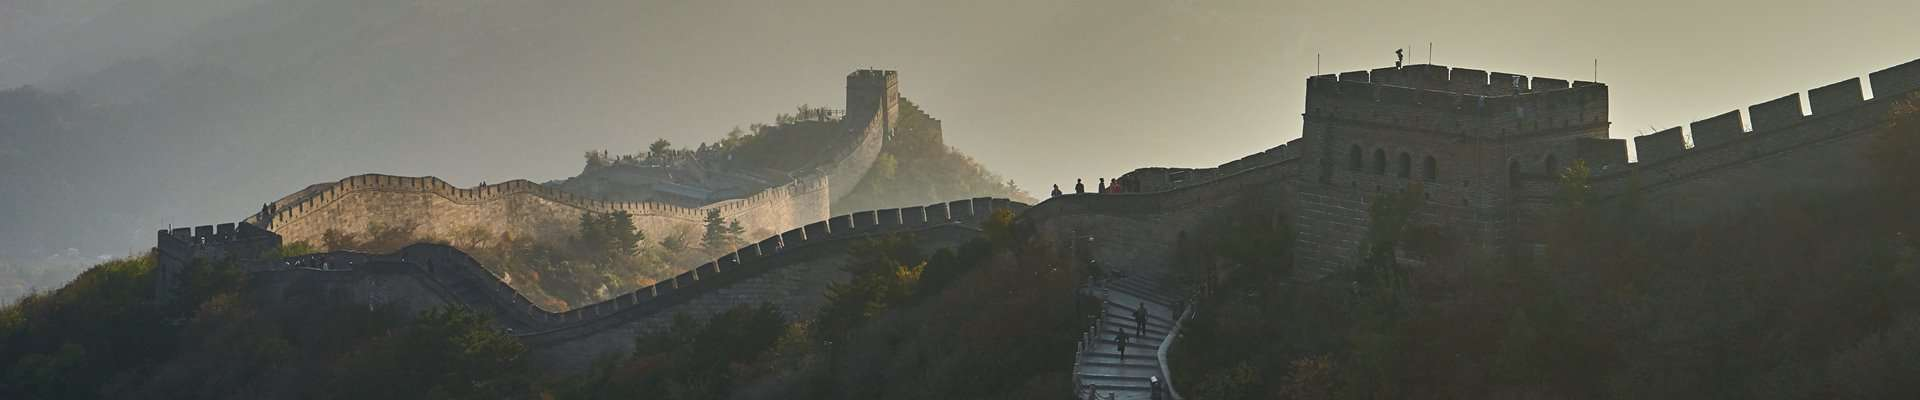 The Great Wall of China as it snakes across the mountains.